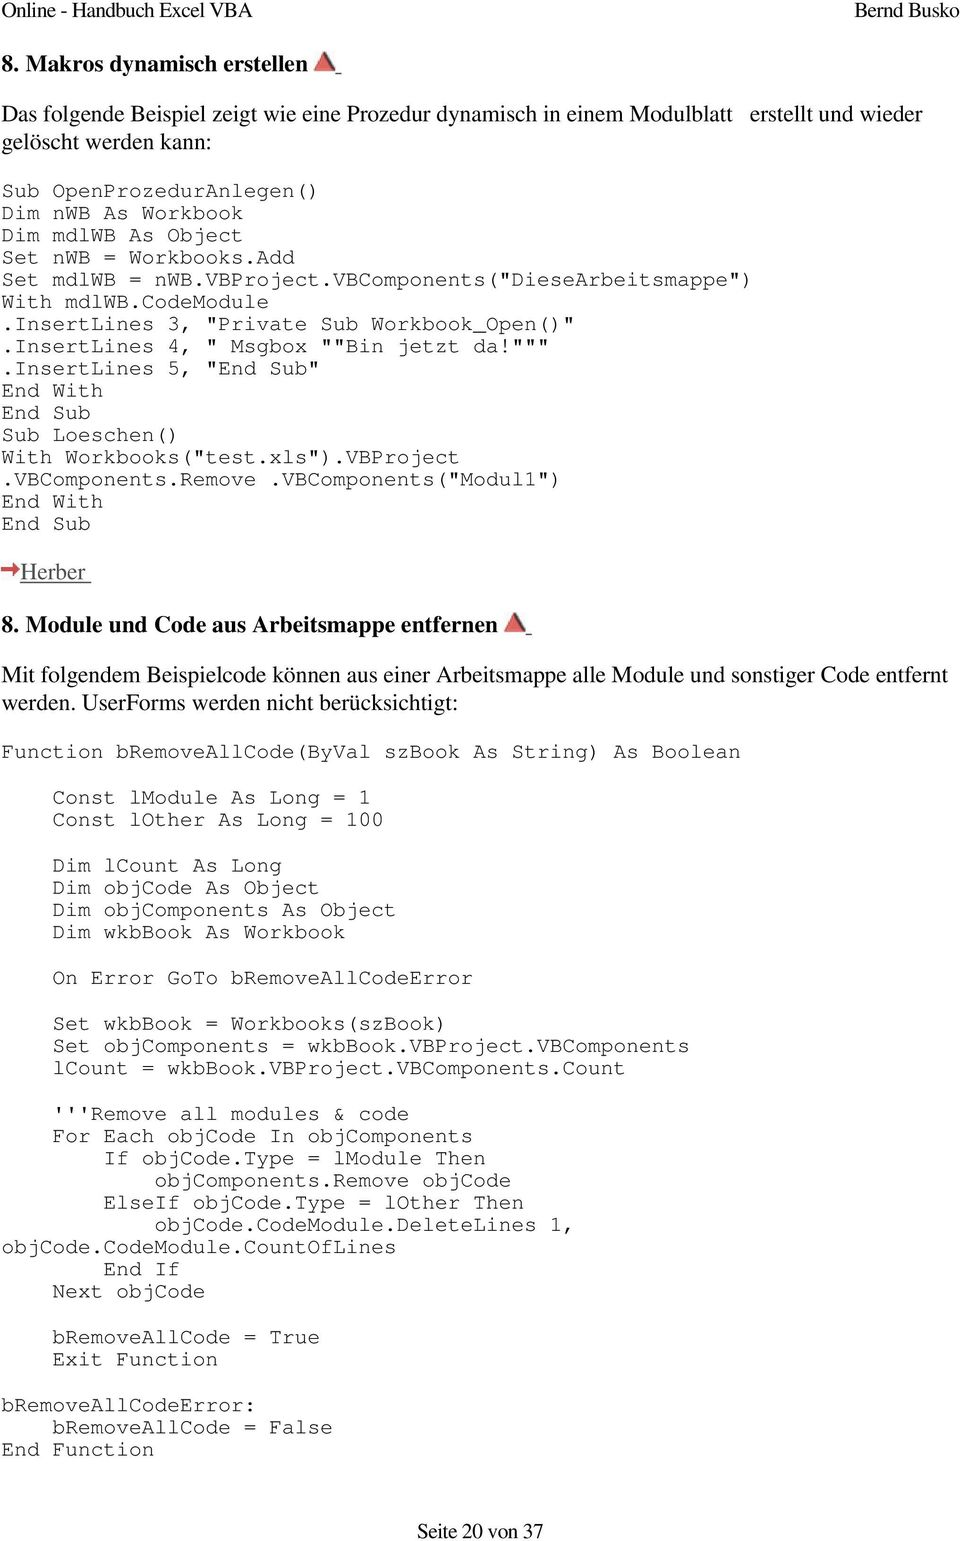 "InsertLines 4, "" Msgbox """"Bin jetzt da!"""""".insertlines 5, """" End With Sub Loeschen() With Workbooks(""test.xls"").VBProject.VBComponents.Remove.VBComponents(""Modul1"") End With Herber 8."